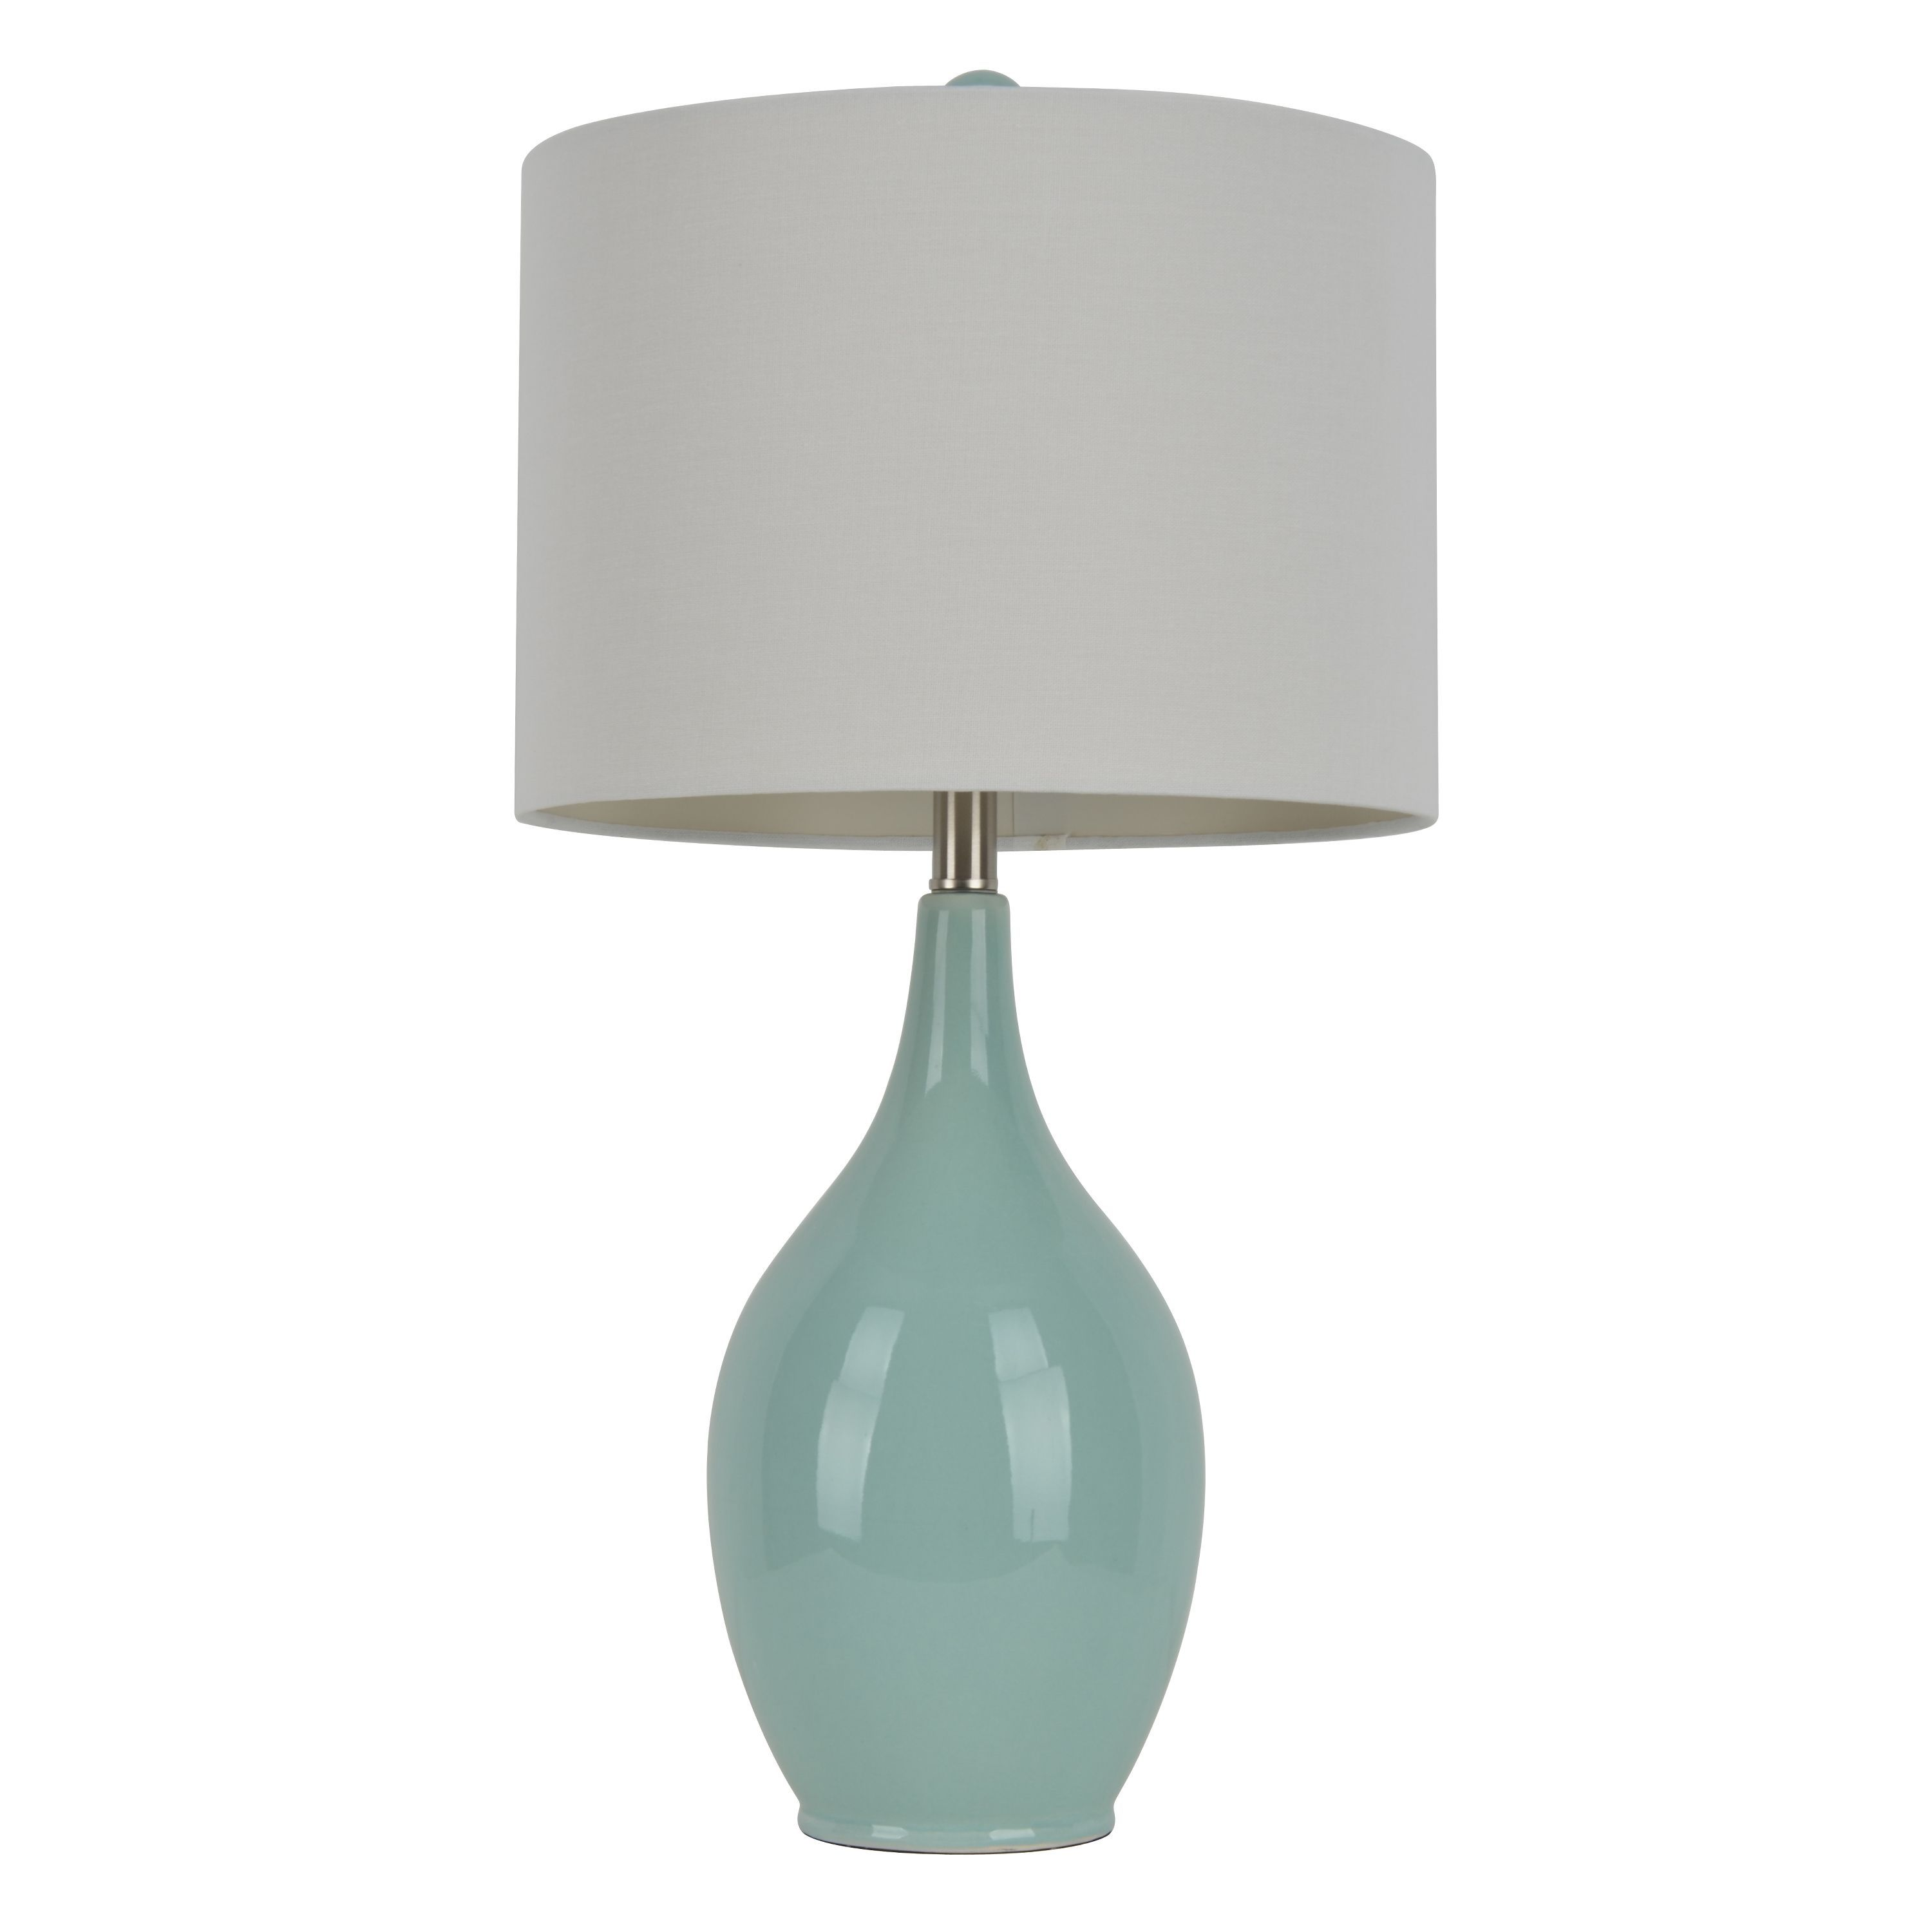 27 inch spa blue ceramic table lamp by decor therapy spa linens 27 inch spa blue ceramic table lamp by decor therapy aloadofball Choice Image